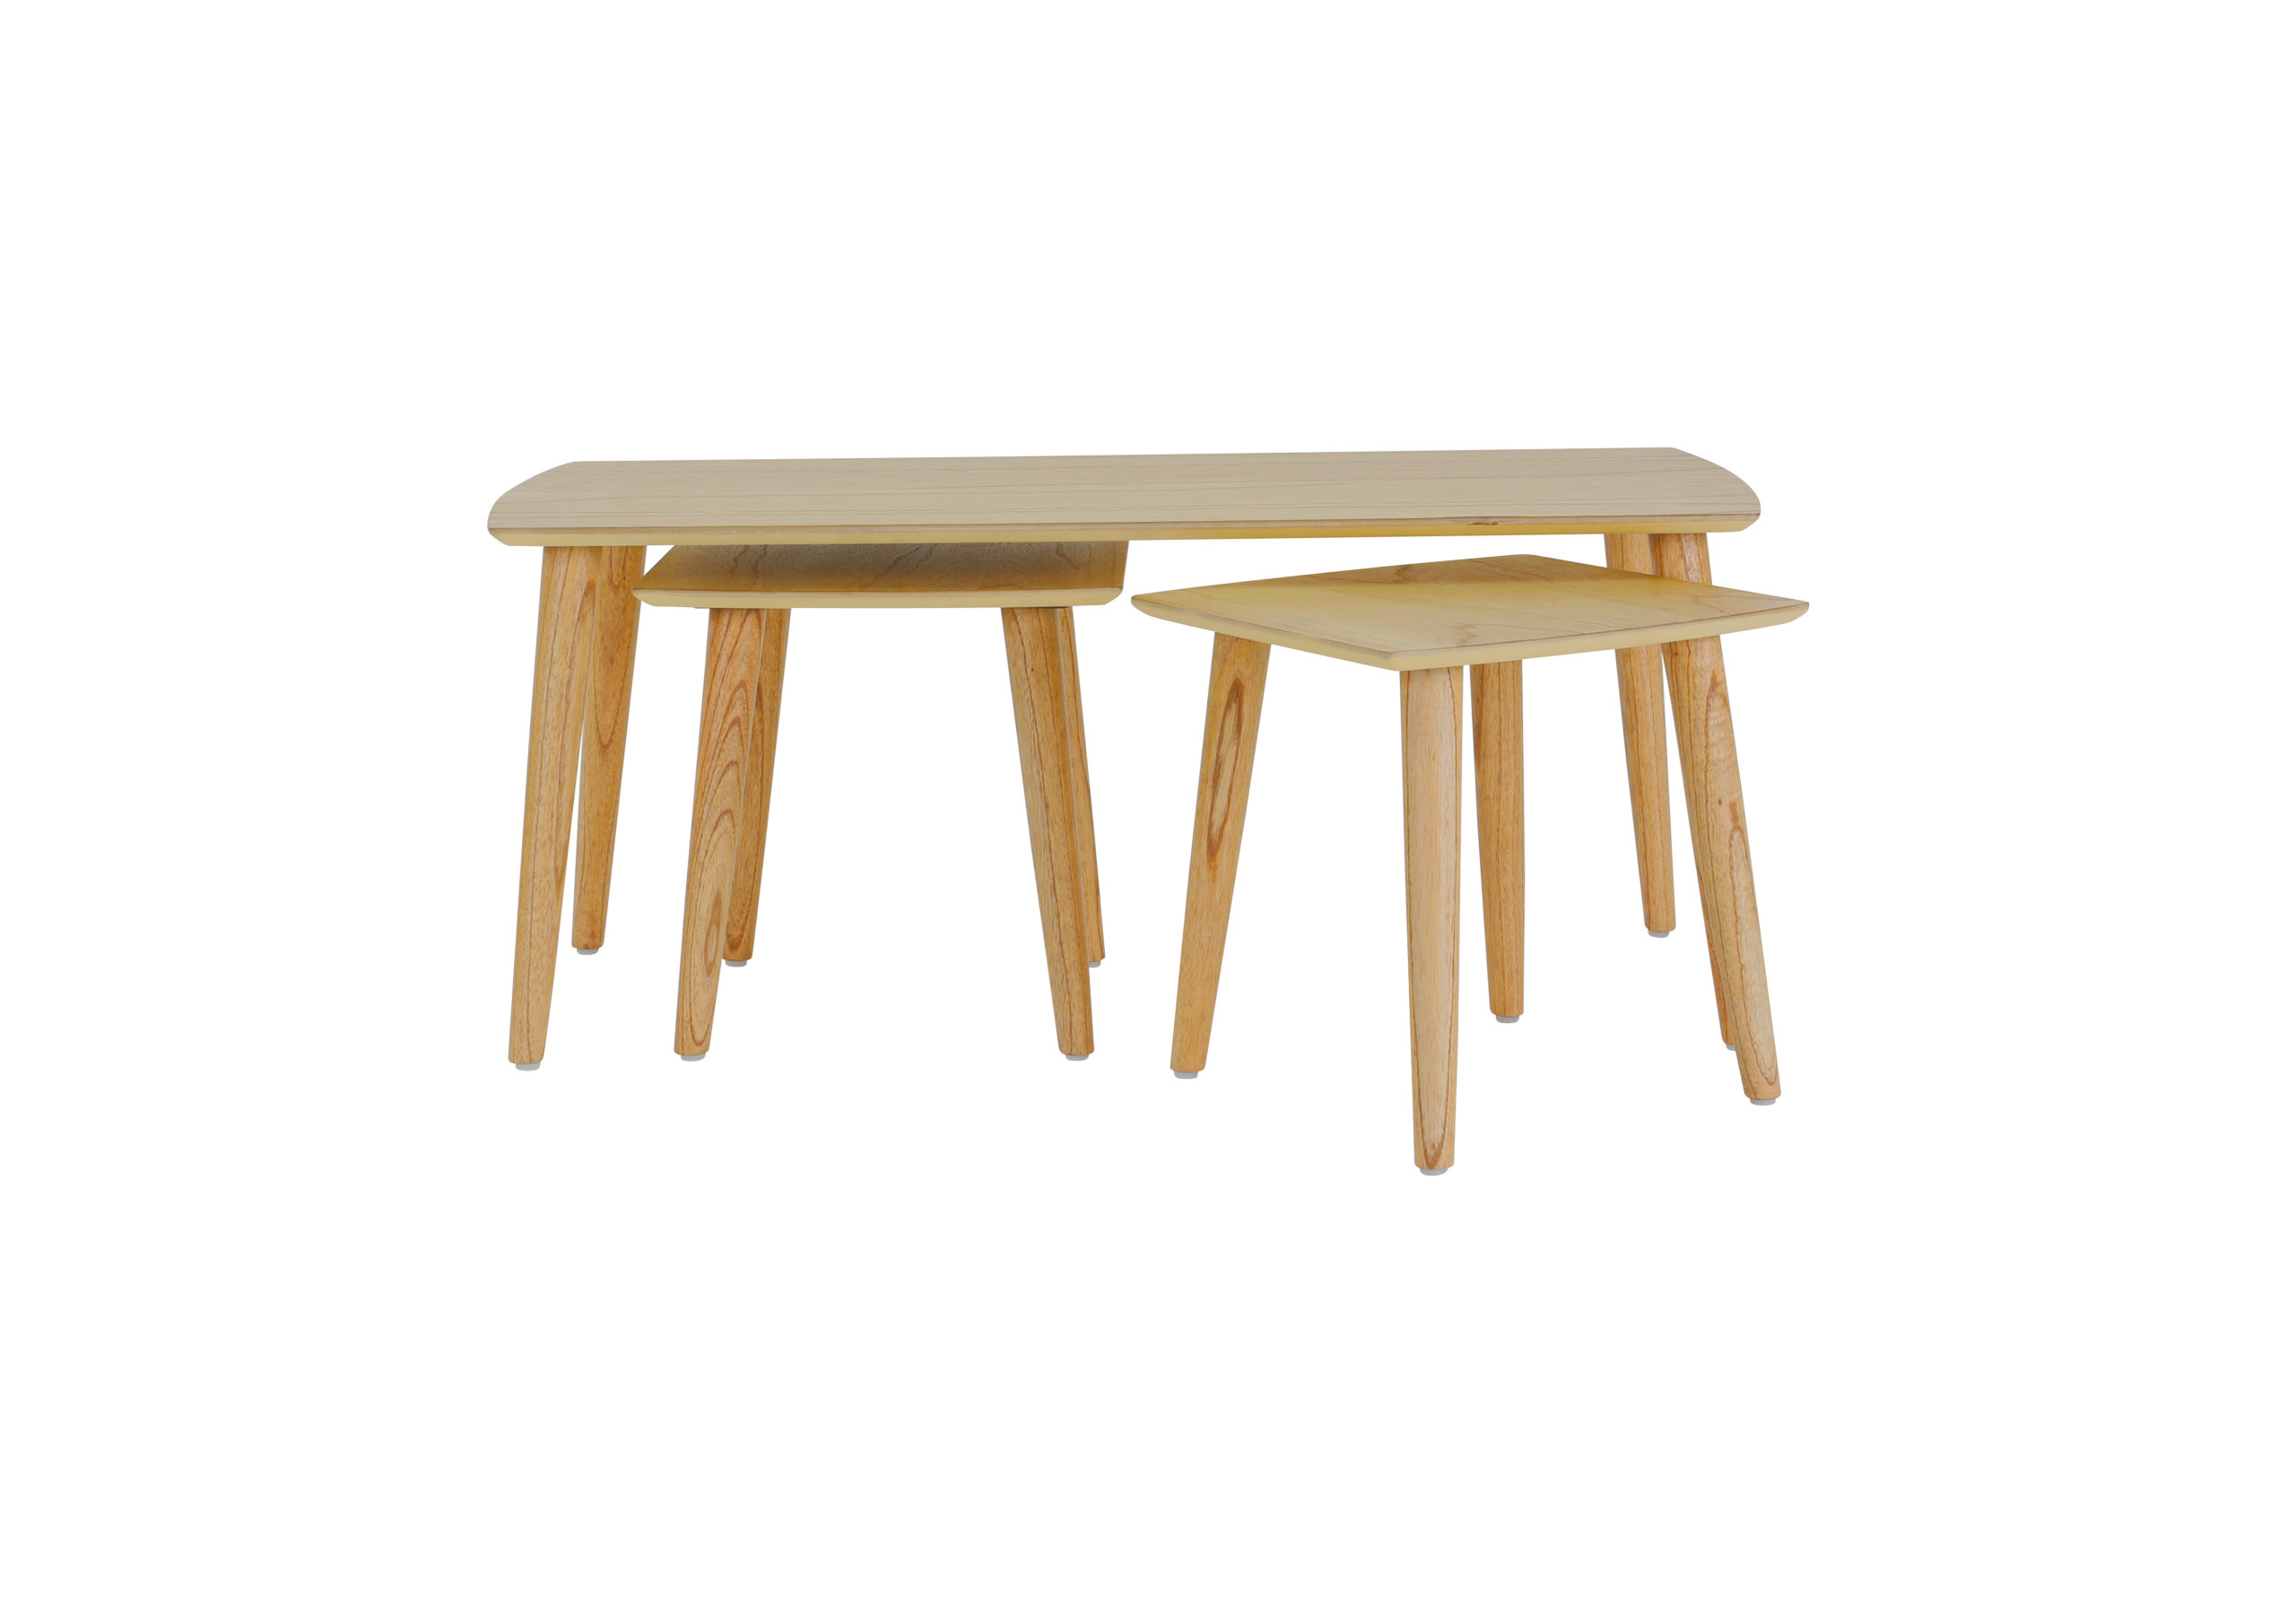 Kayu Table Set